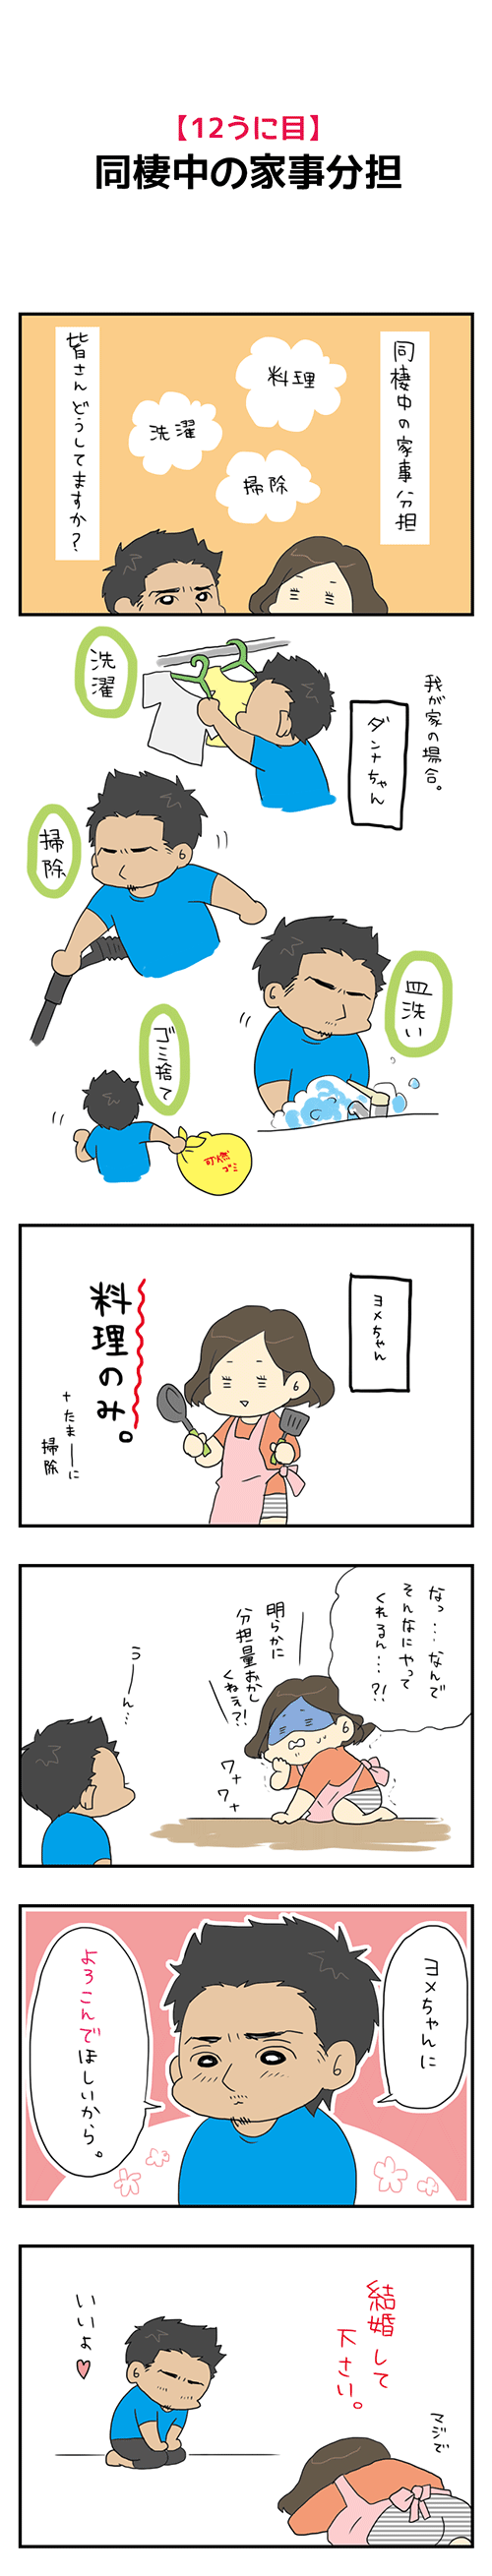 20140908_1.png